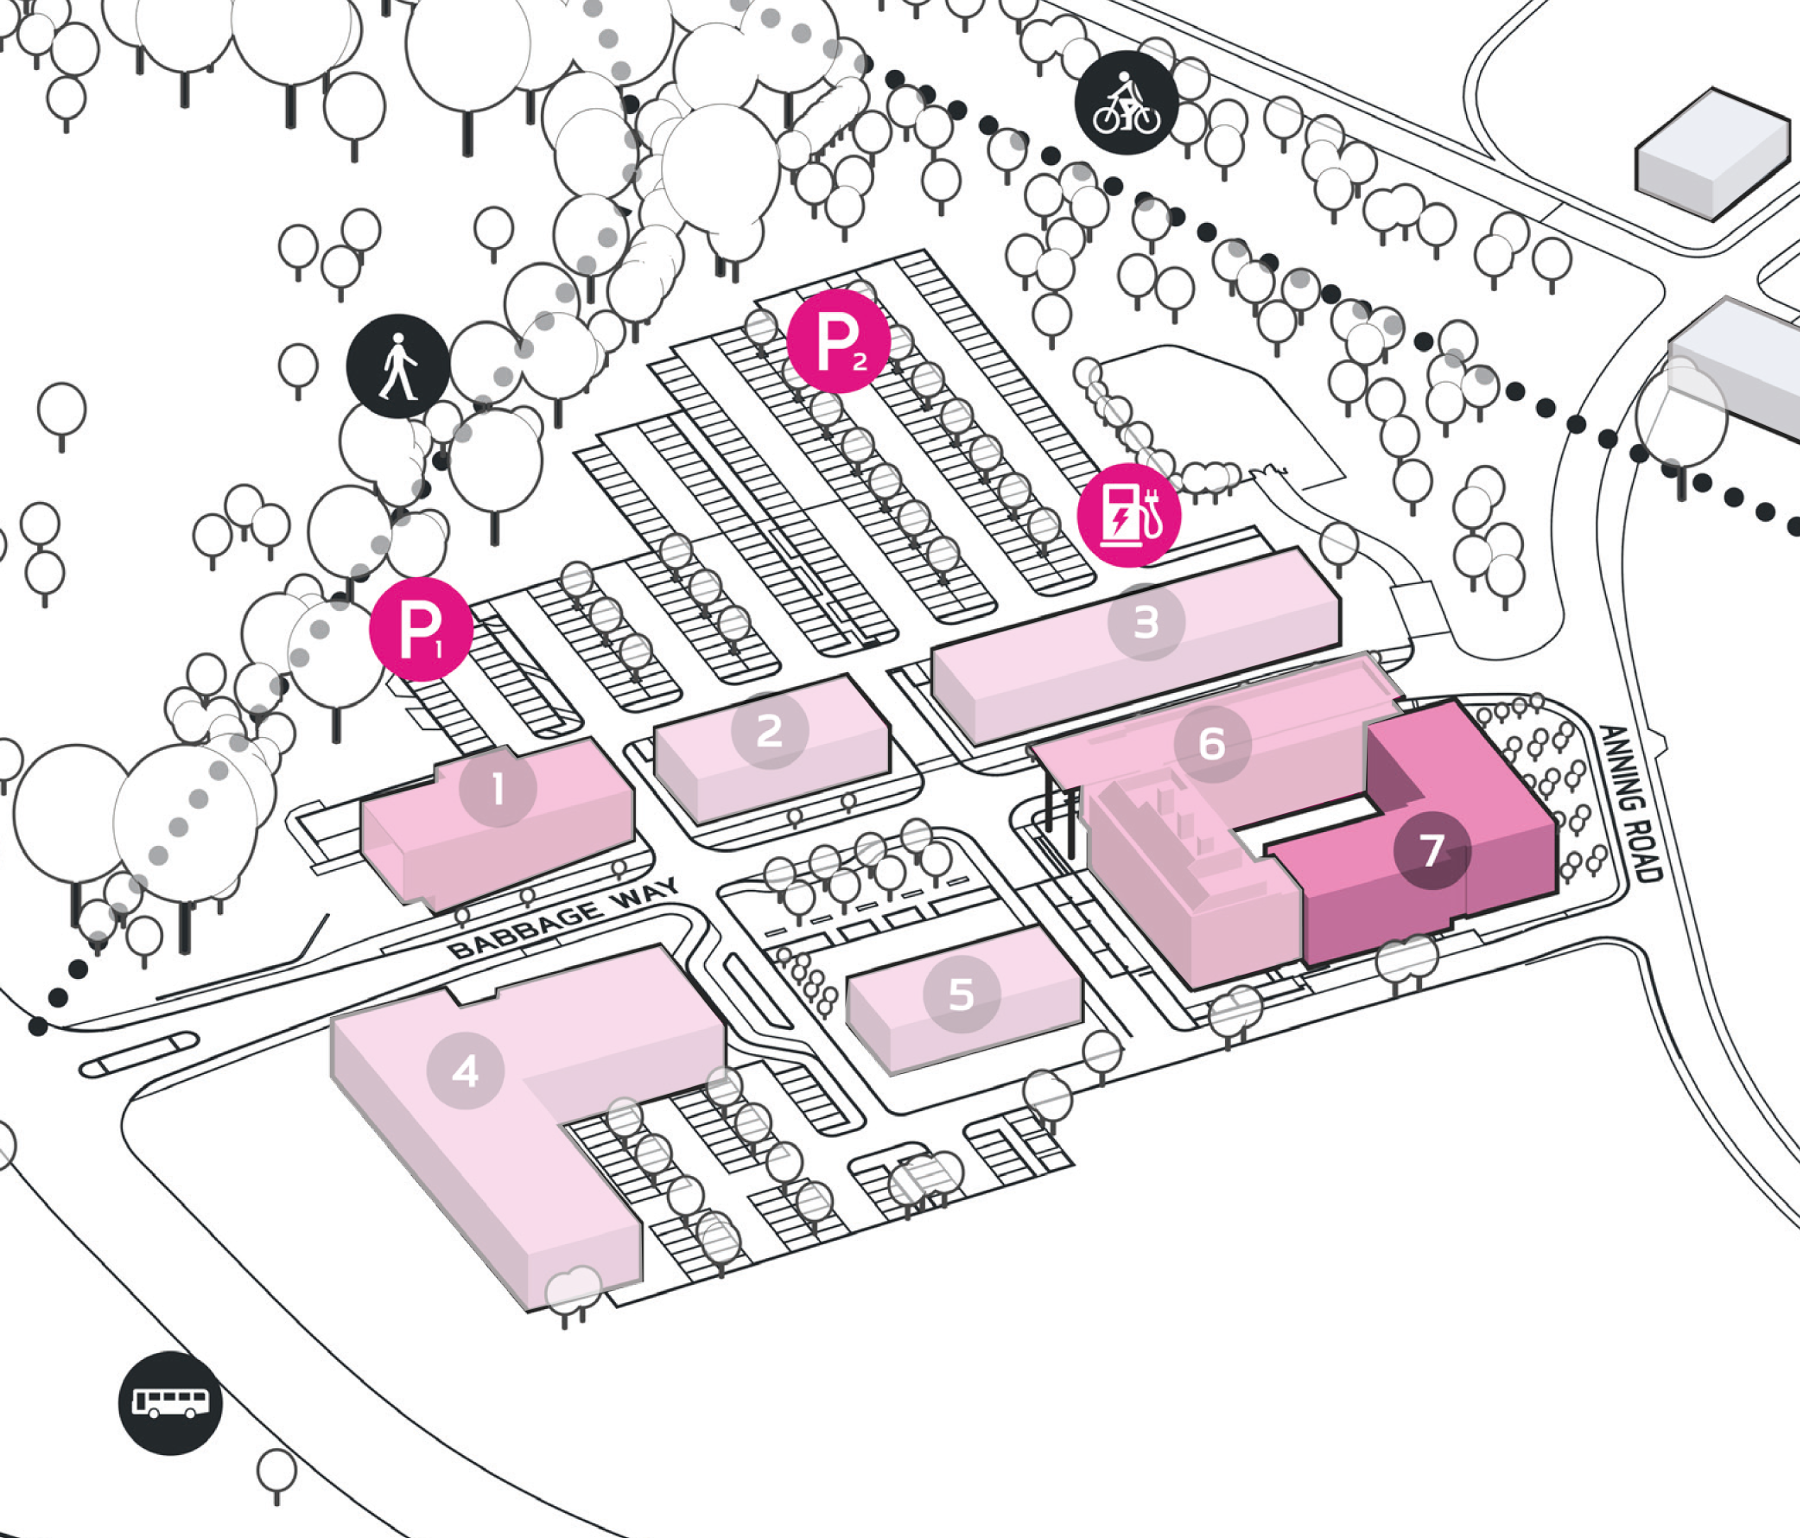 Park Plan highlighting cluster A Building 7